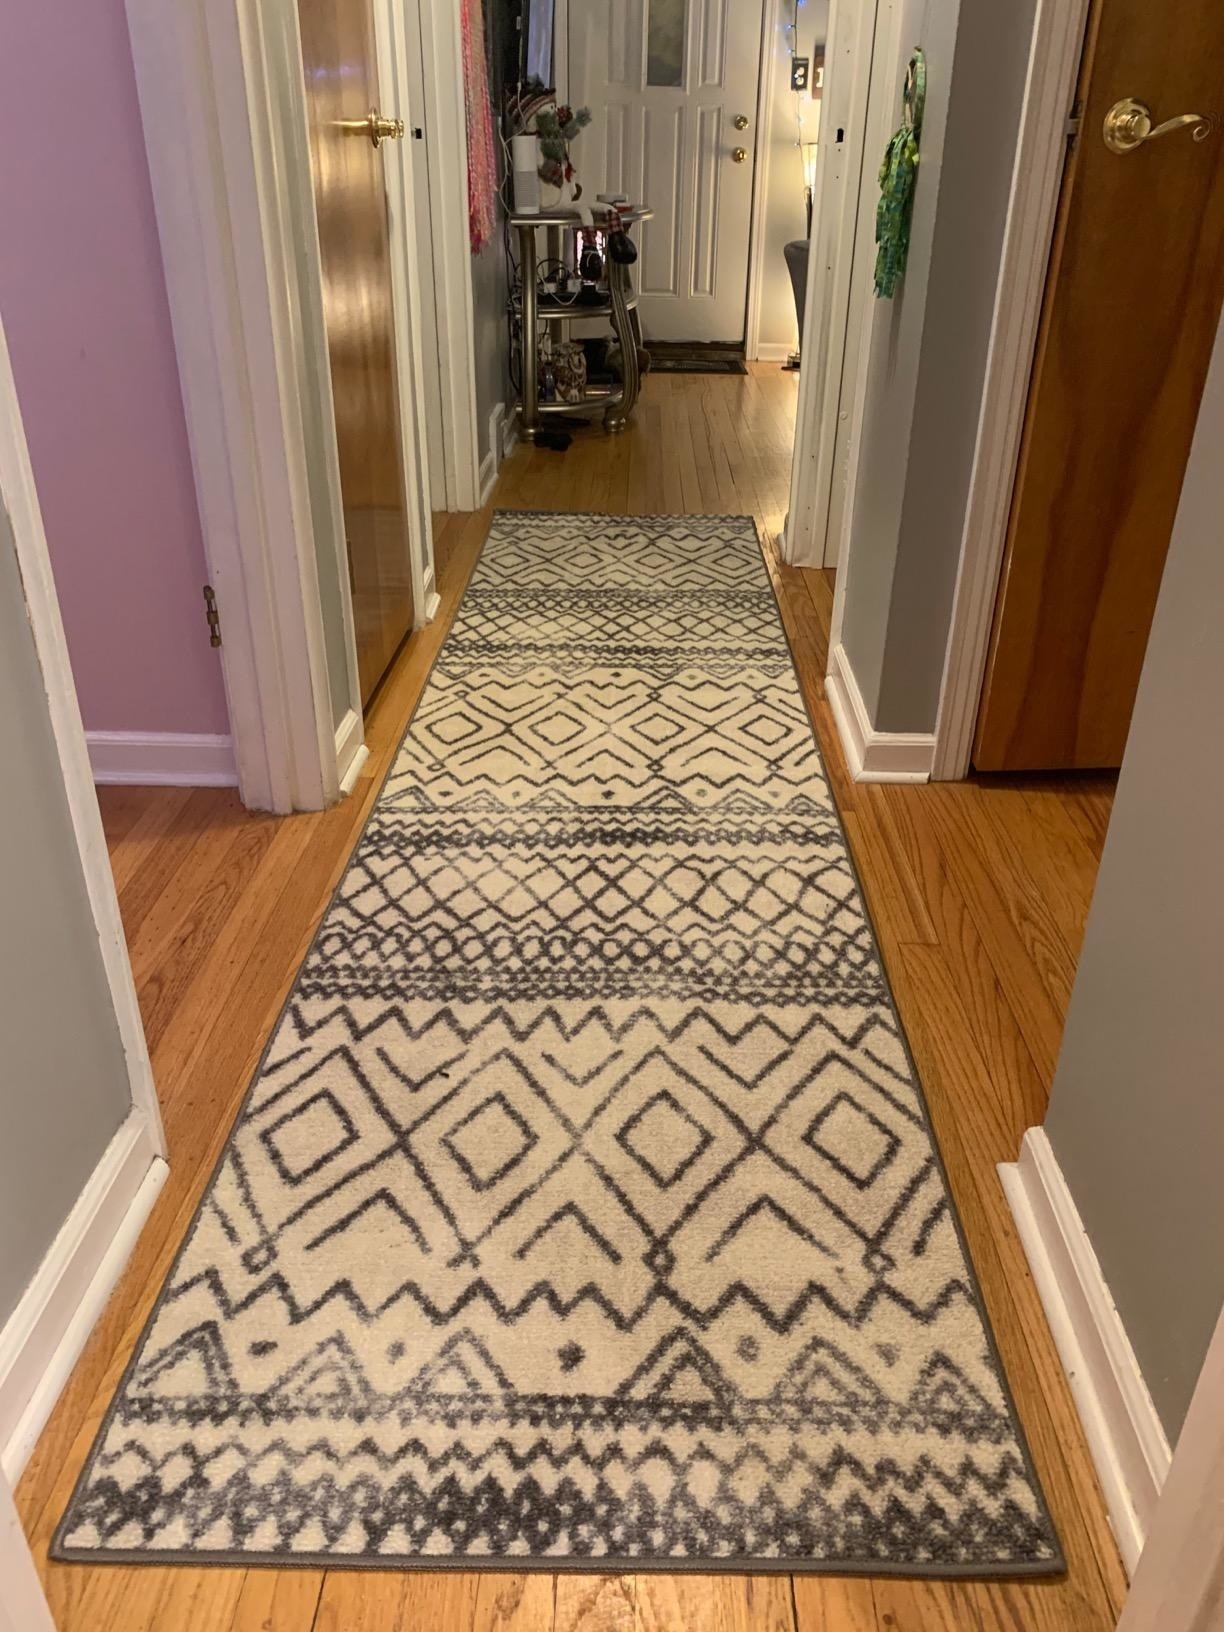 a reviewer photo of the carpet runner in a hallway in a neutral beige with a dark colored pattern